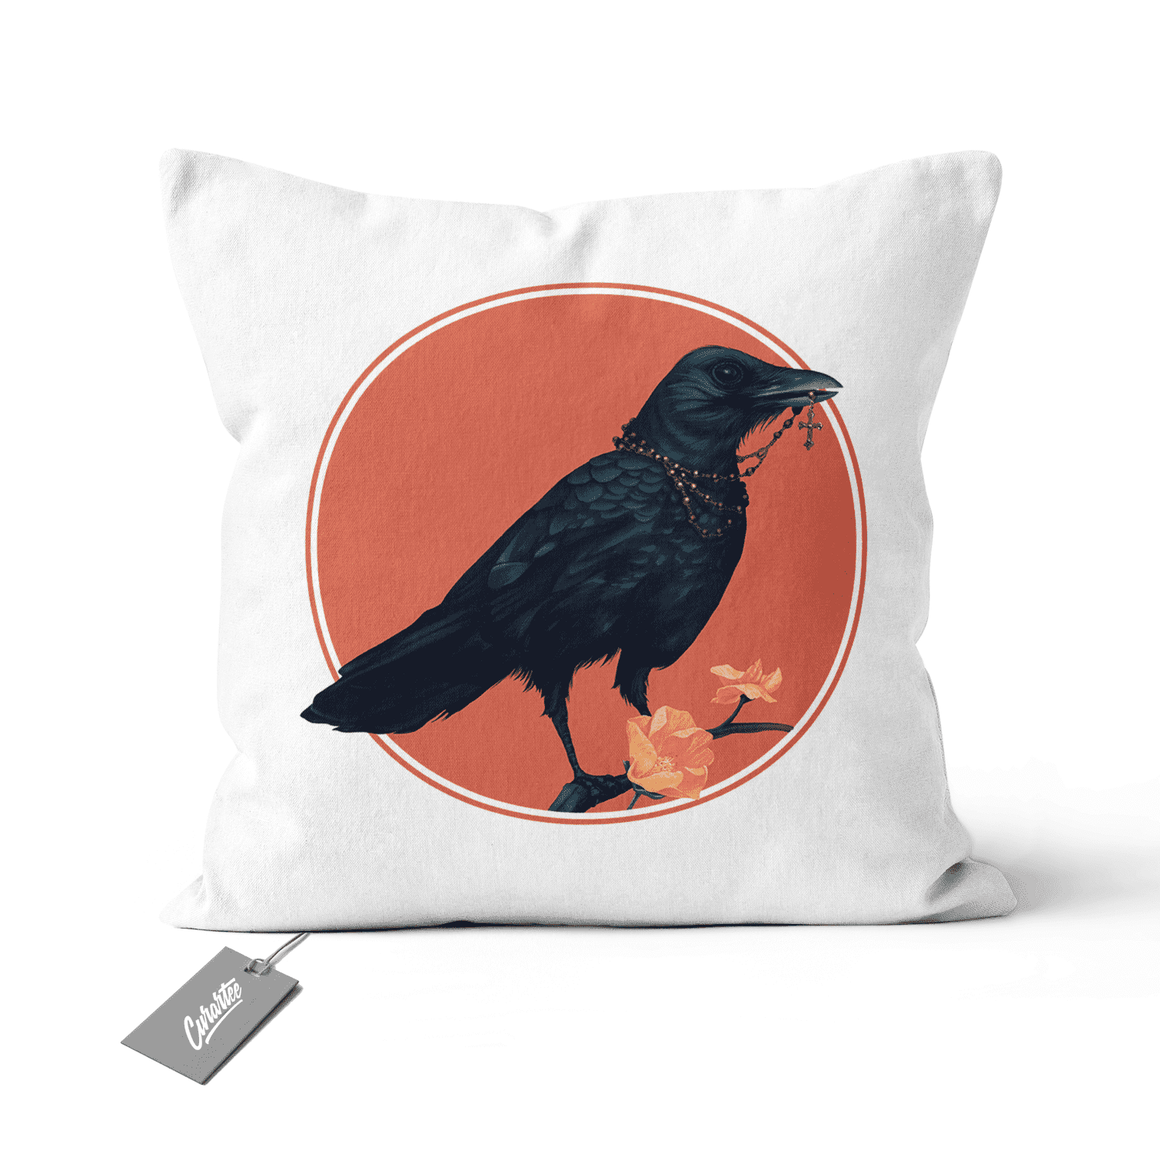 Oily Crow Cushion - Premium Artwear Curartee